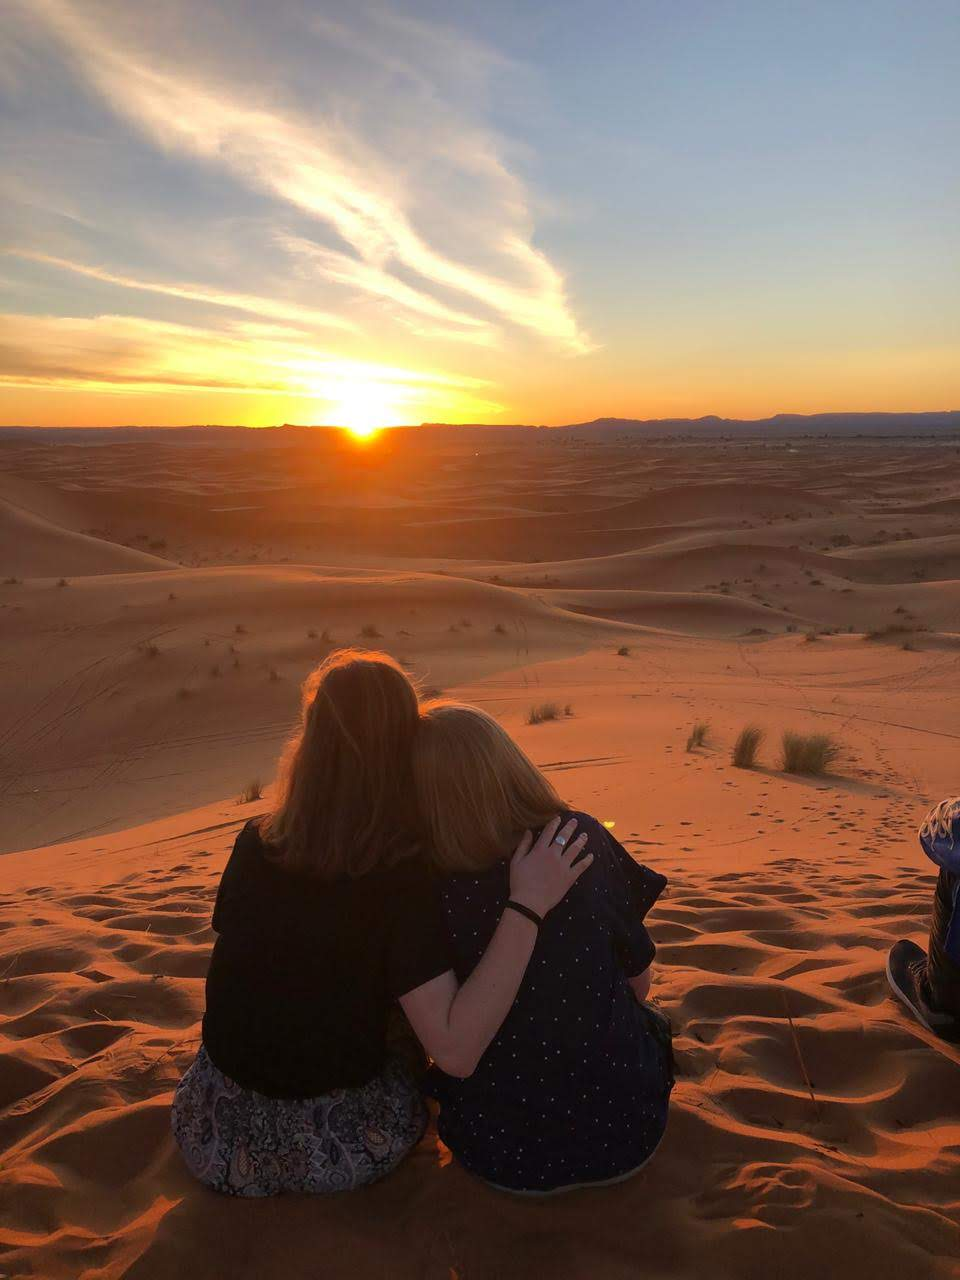 Merzouga and the dunes of the Sahara, breathtaking and otherworldly, cast into doubt everything I thought I knew about the world. In the middle of miles and miles of sand, and under a sky full of stars unlike anything I had ever seen, I shared the most incredible trip with the loveliest people. Photo credit: Fisher, 2019